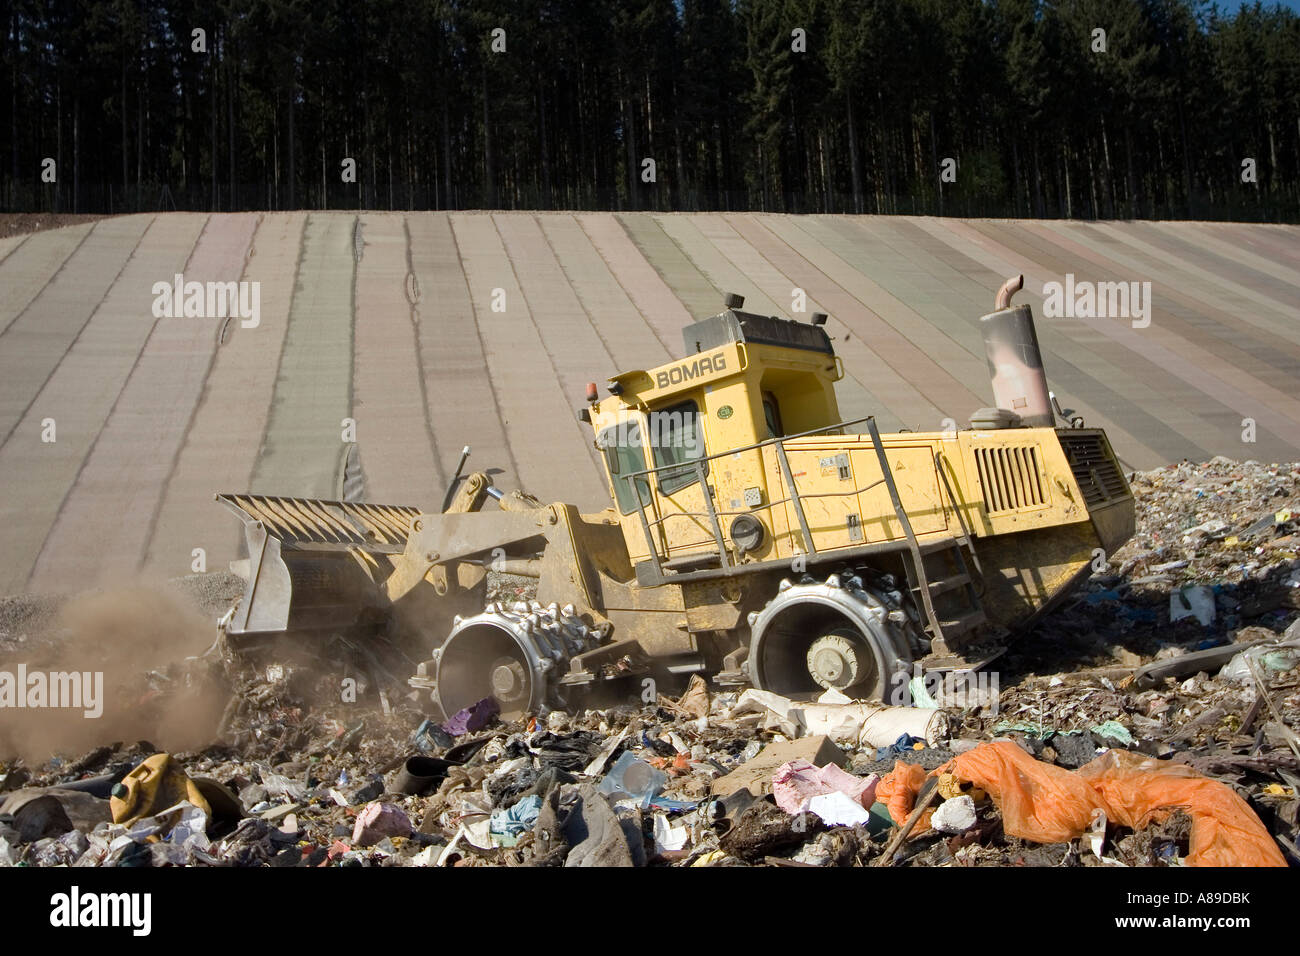 Waste and garbage truck at disposal site Riederberg, Woergl, Tyrole, Austria - Stock Image